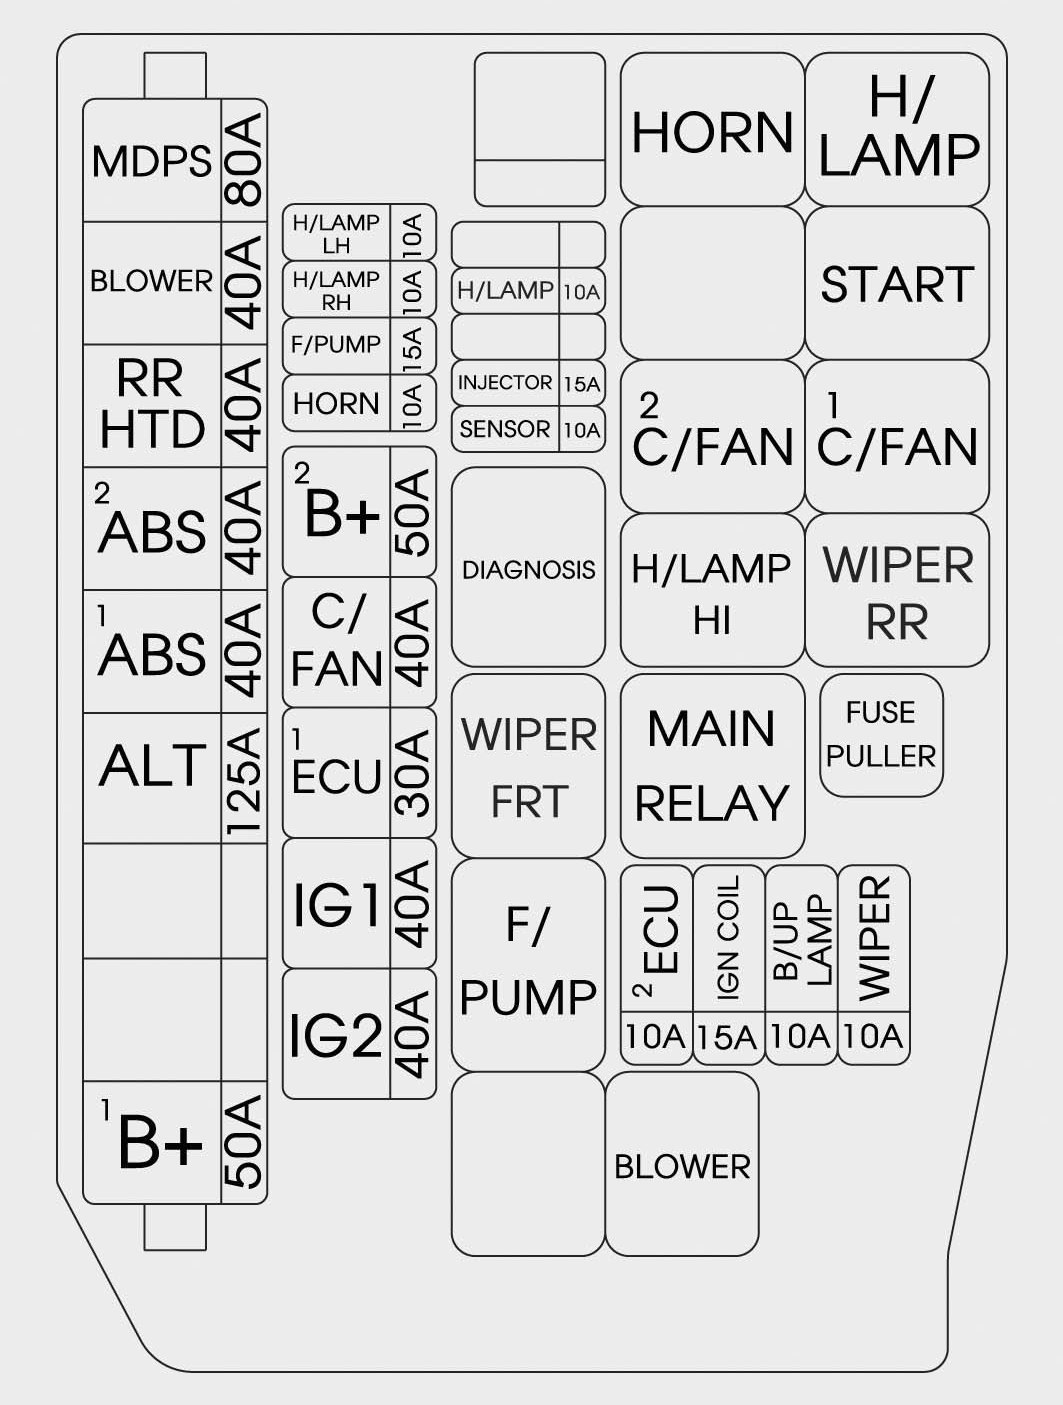 hyundai sonata (2015) – fuse box diagram - auto genius 2004 hyundai sonata fuse panel diagram #13